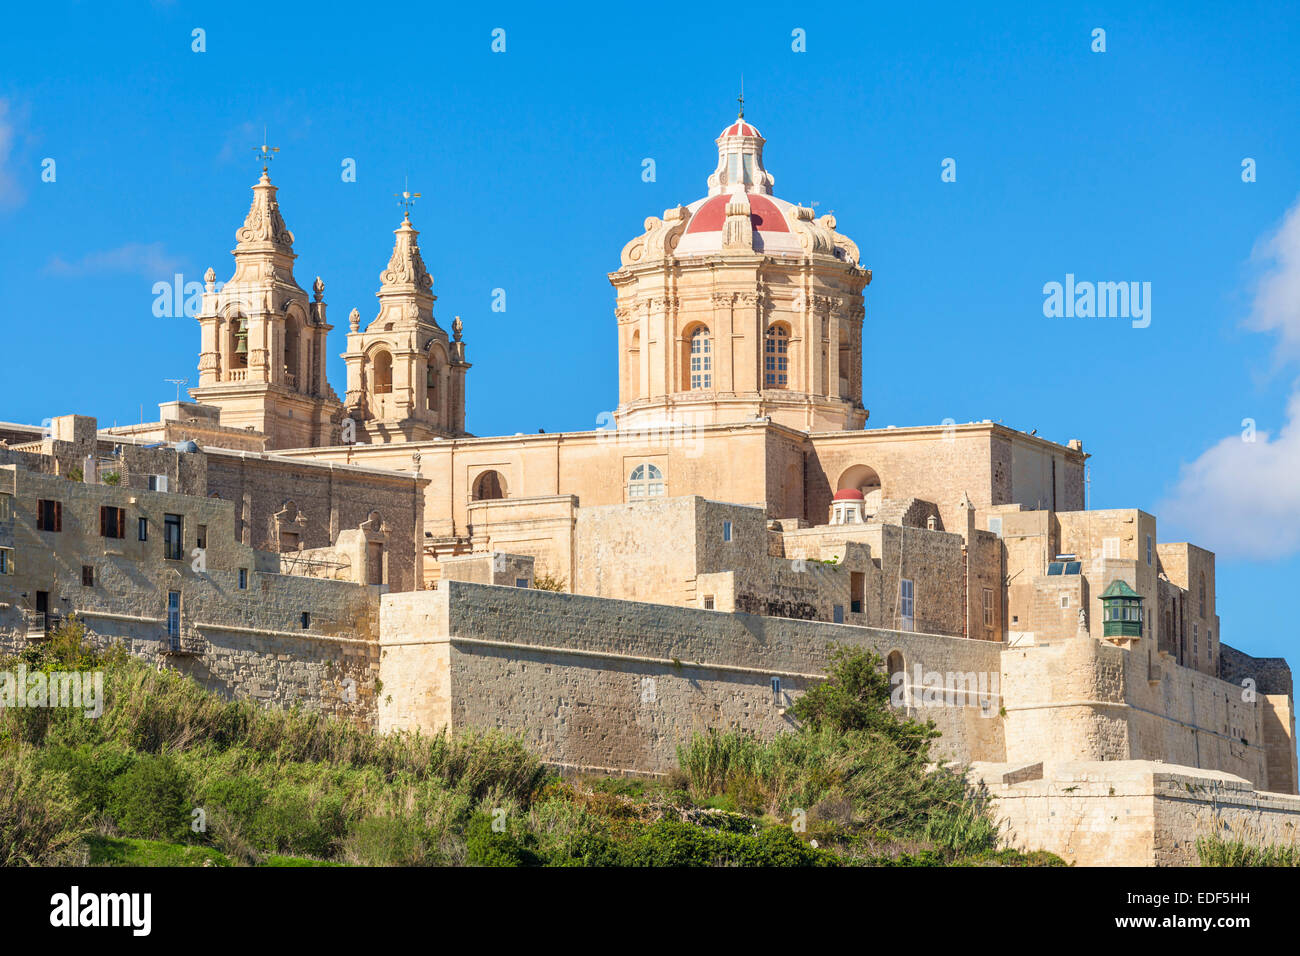 St Pauls Cathedral and Skyline of medieval walled city Mdina Malta EU Europe Stock Photo